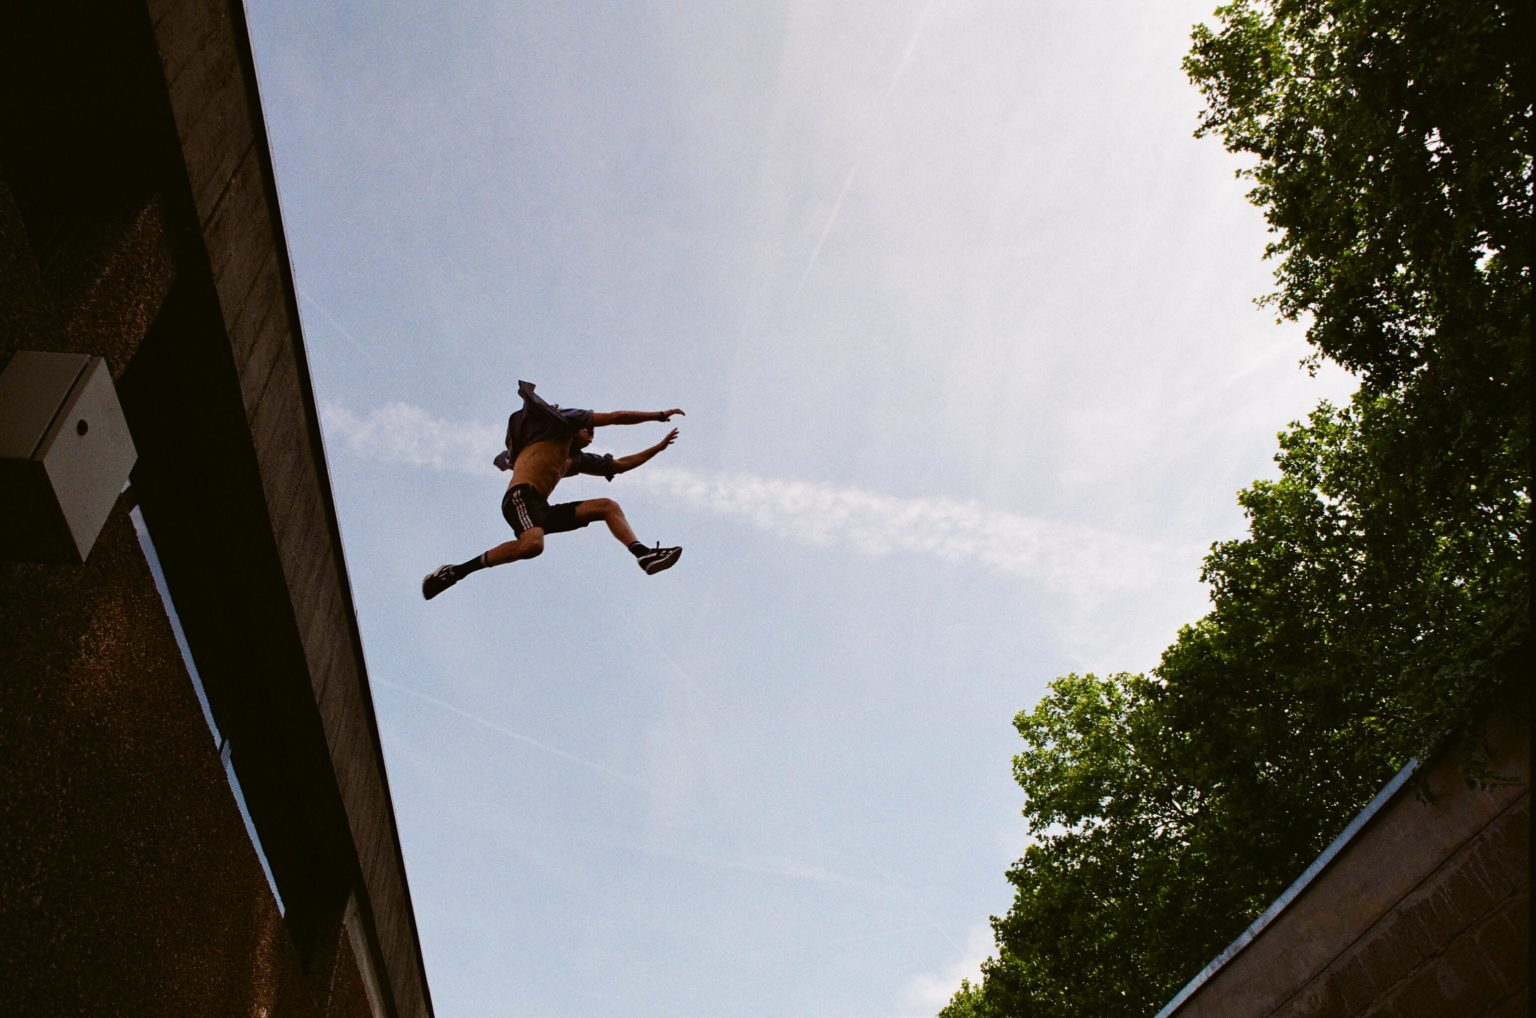 PARIS, LA MECA DEL PARKOUR